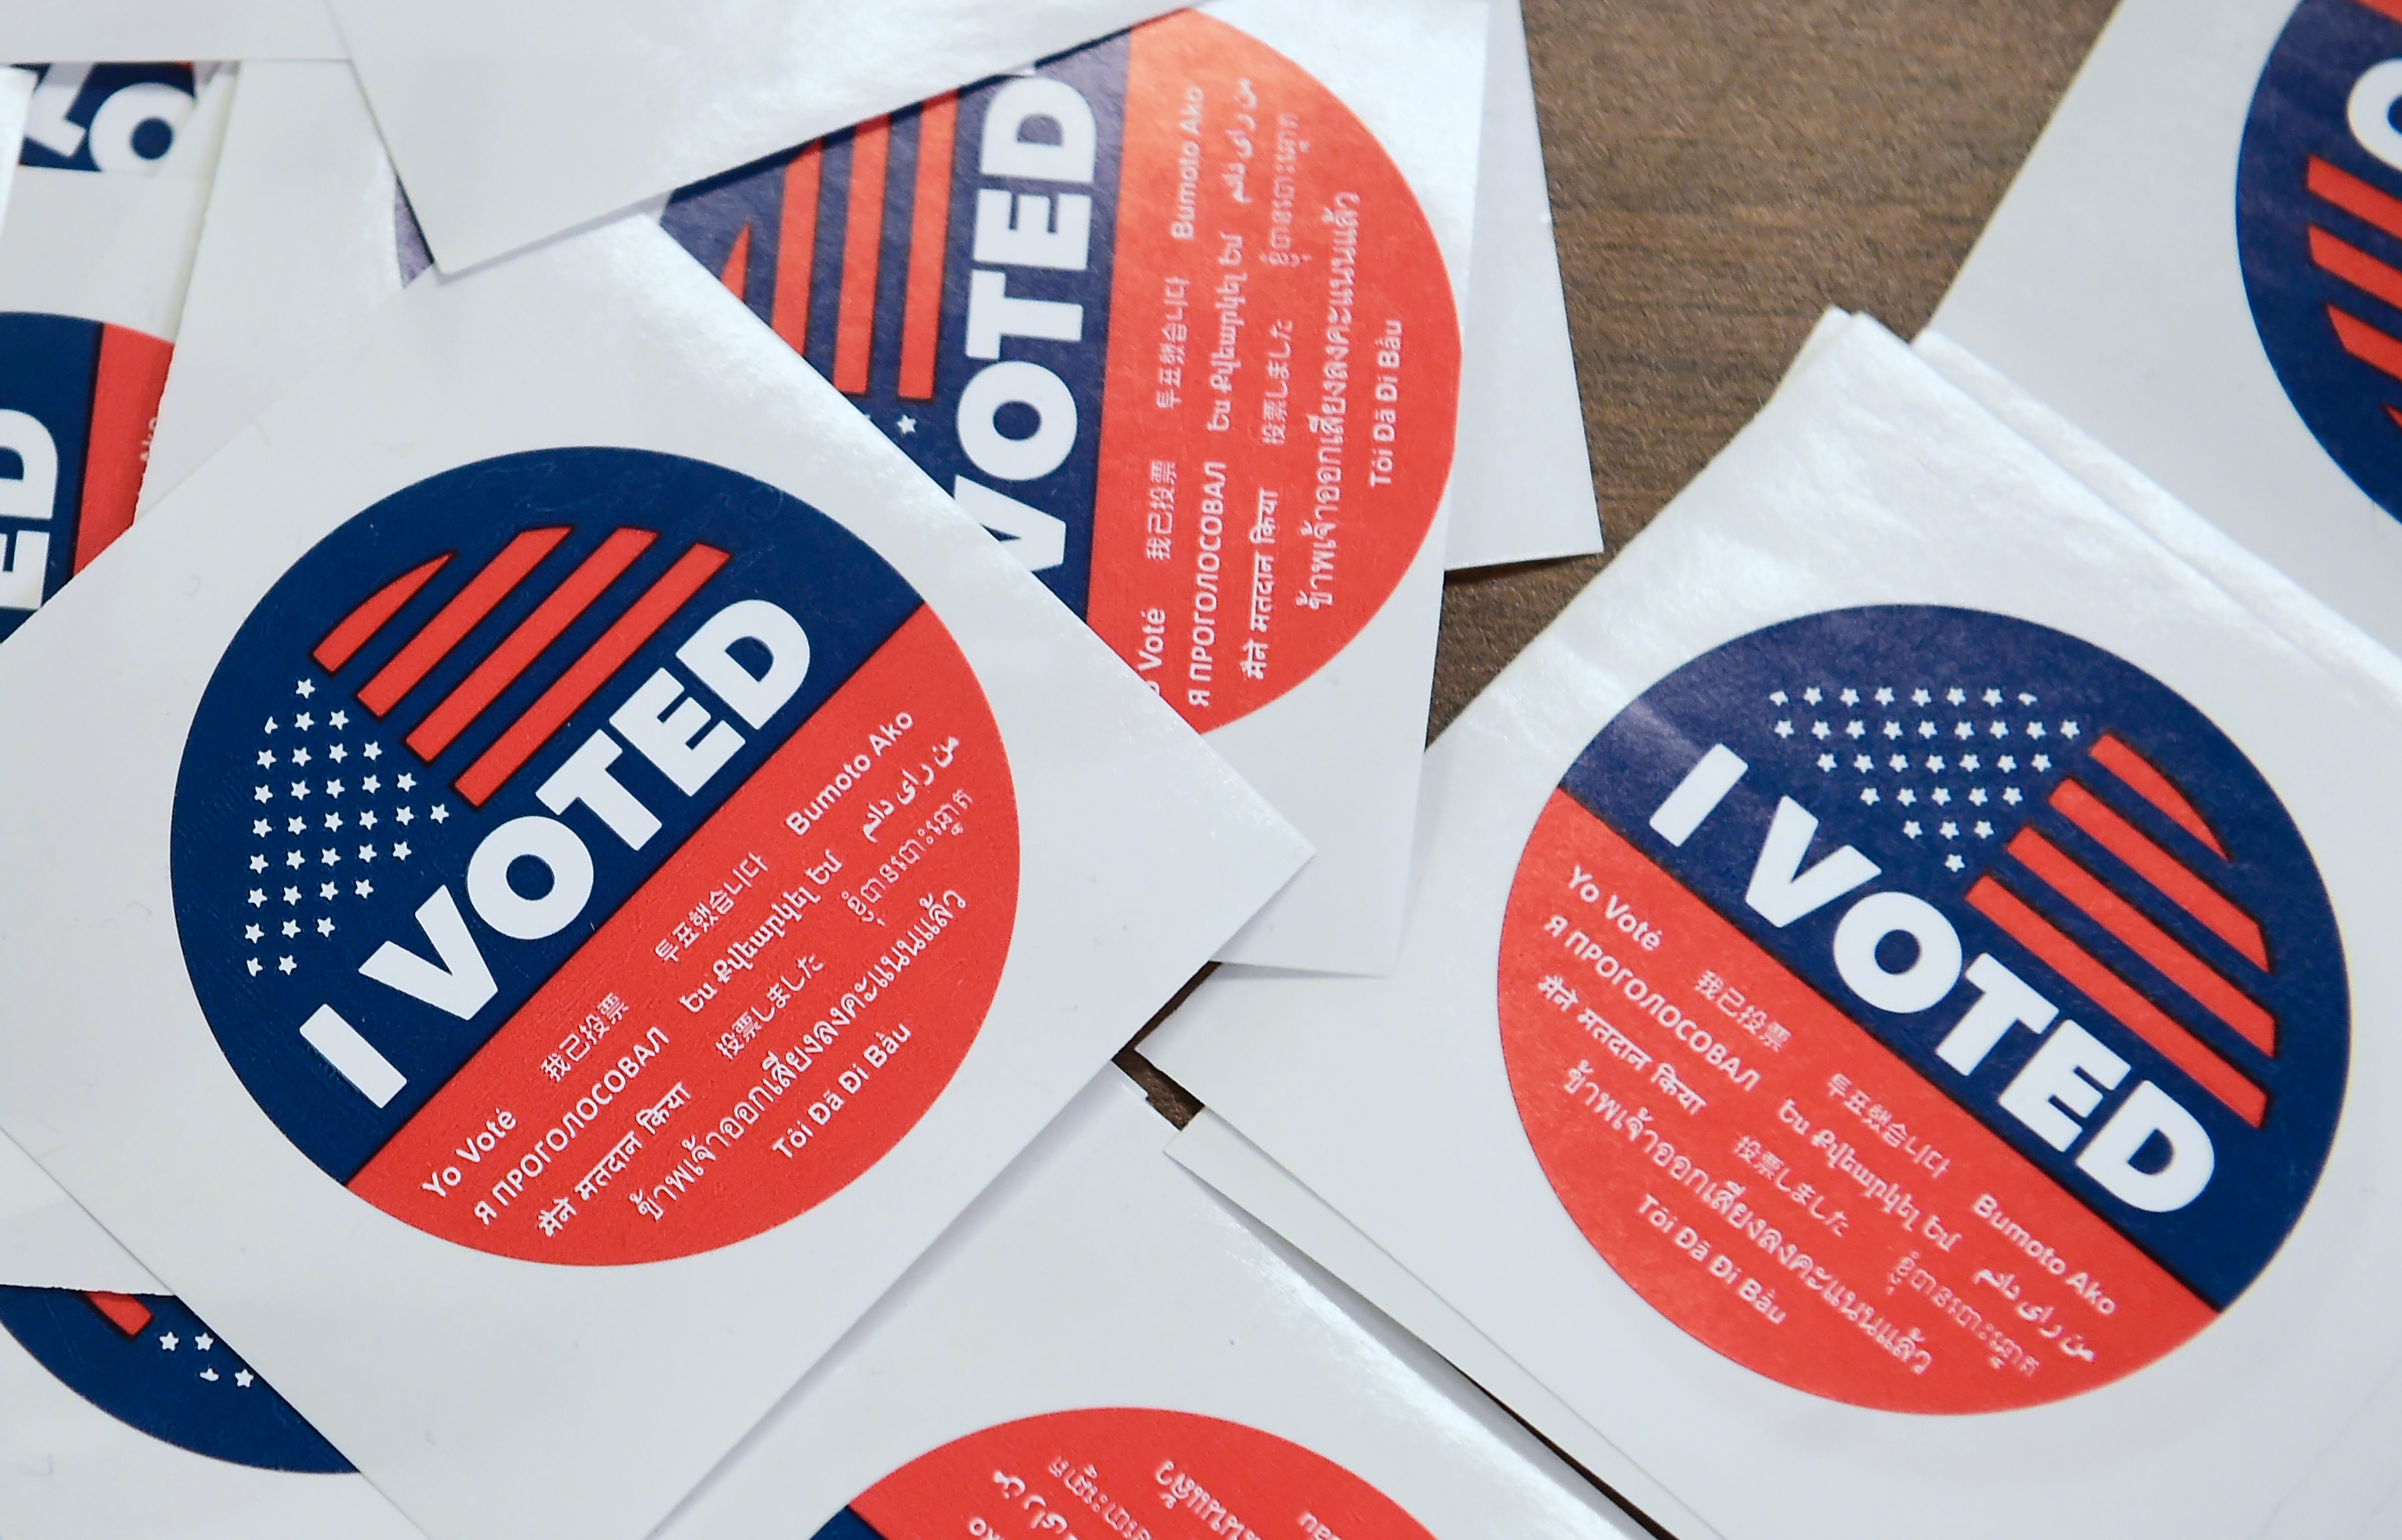 California's multi-language  I Voted  stickers on offer for early voters at the Los Angeles County Registrar's Office in Norwalk, California on November 5, 2018, a day ahead the November 6 midterm elections in the United States. (Photo by Frederic J. BROWN / AFP)        (Photo credit should read FREDERIC J. BROWN/AFP/Getty Images)